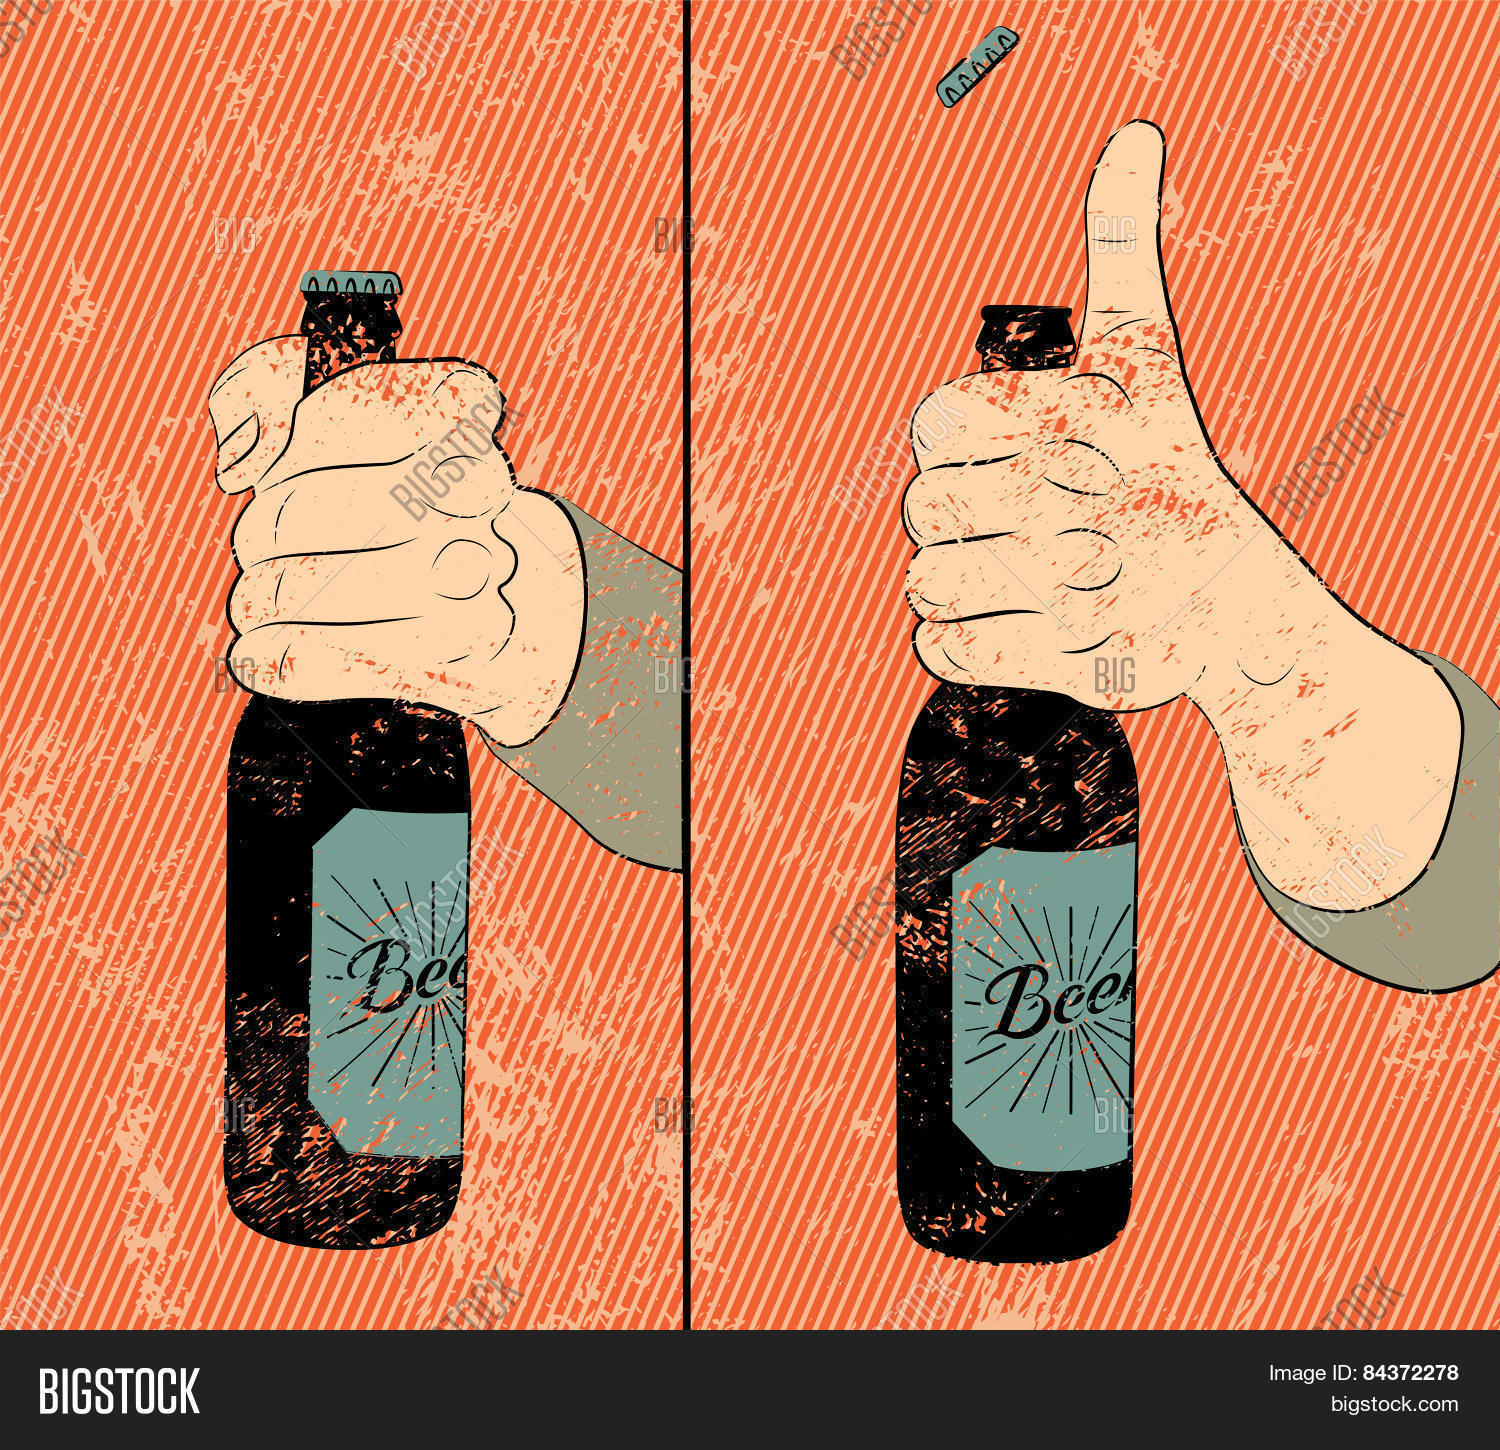 Vintage Grunge Style Beer Poster Humorous Instruction For Opening The A Bottle Of